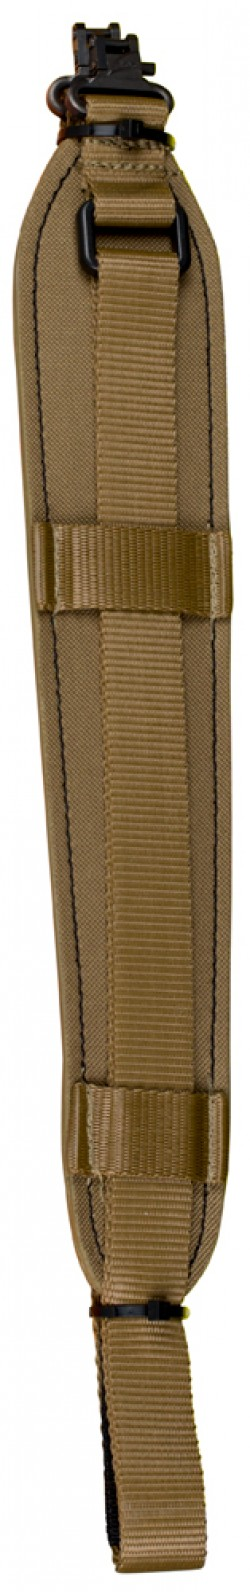 Outdoor Connection Padded Super-Sling, Coyote Brown AD-20950